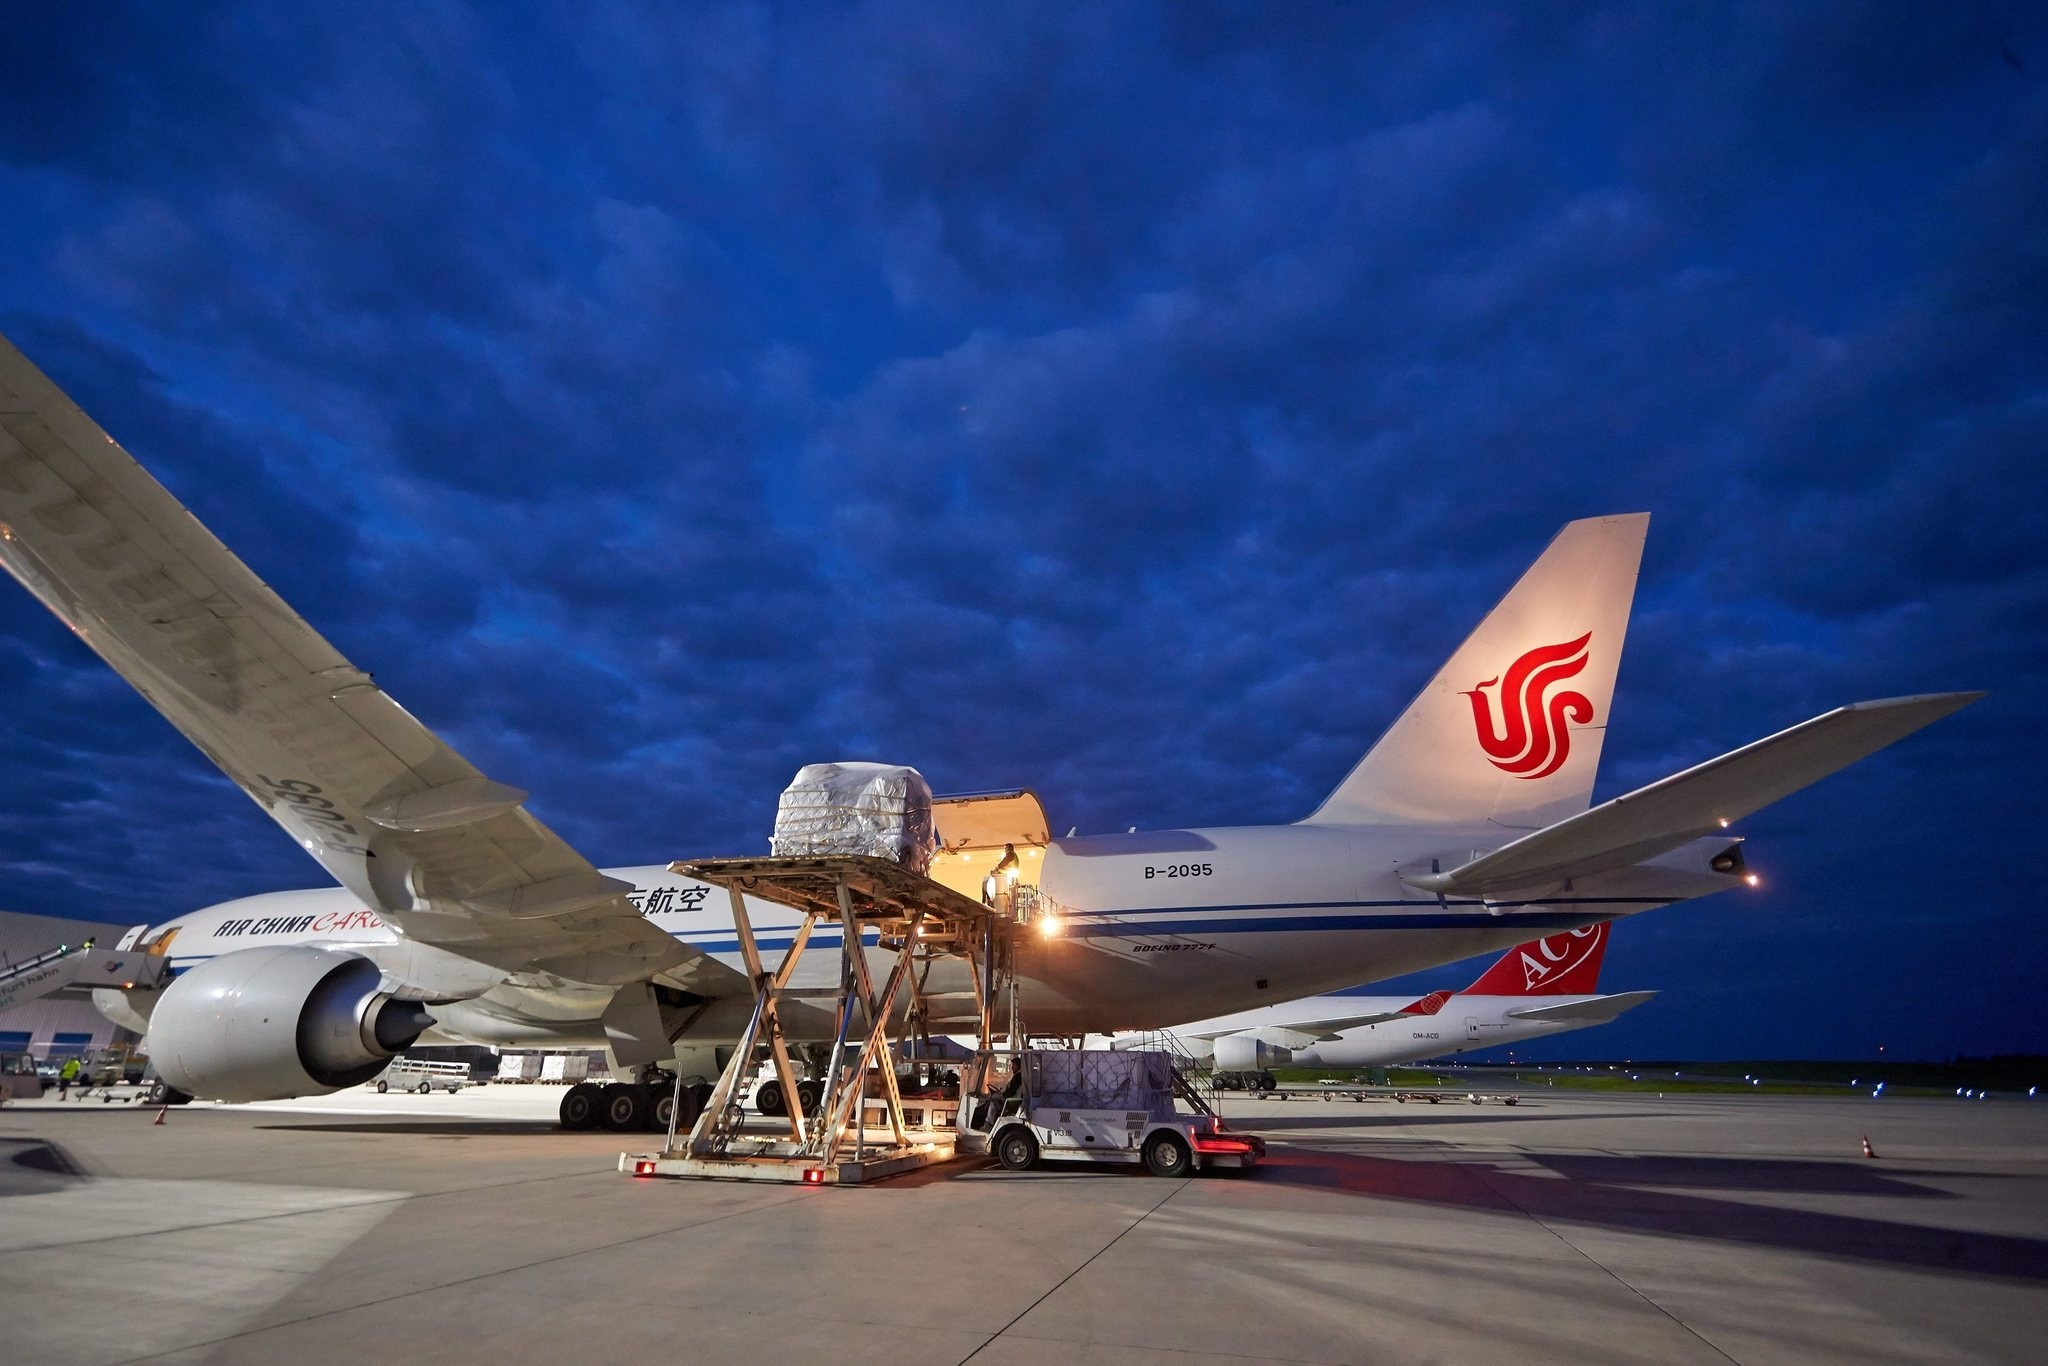 A picture made available Sept. 3, 2014 shows a Boeing 777 freight airplane of Chinese airline Air China cargo at the Airport Frankfurt/Hahn. (EPA Photo)